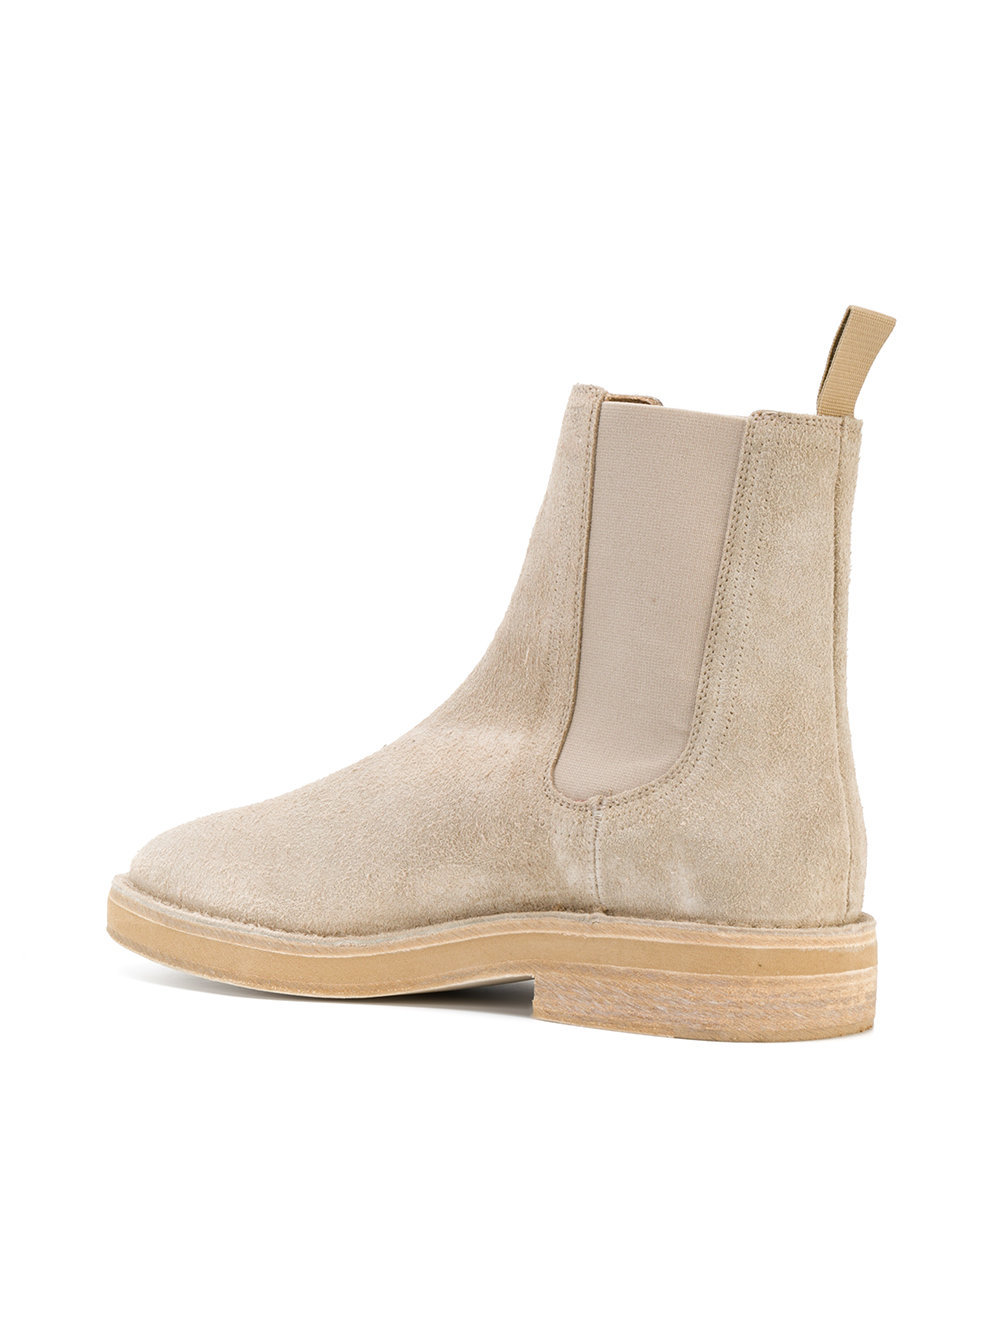 a75dd29db6e Yeezy Chelsea Boots